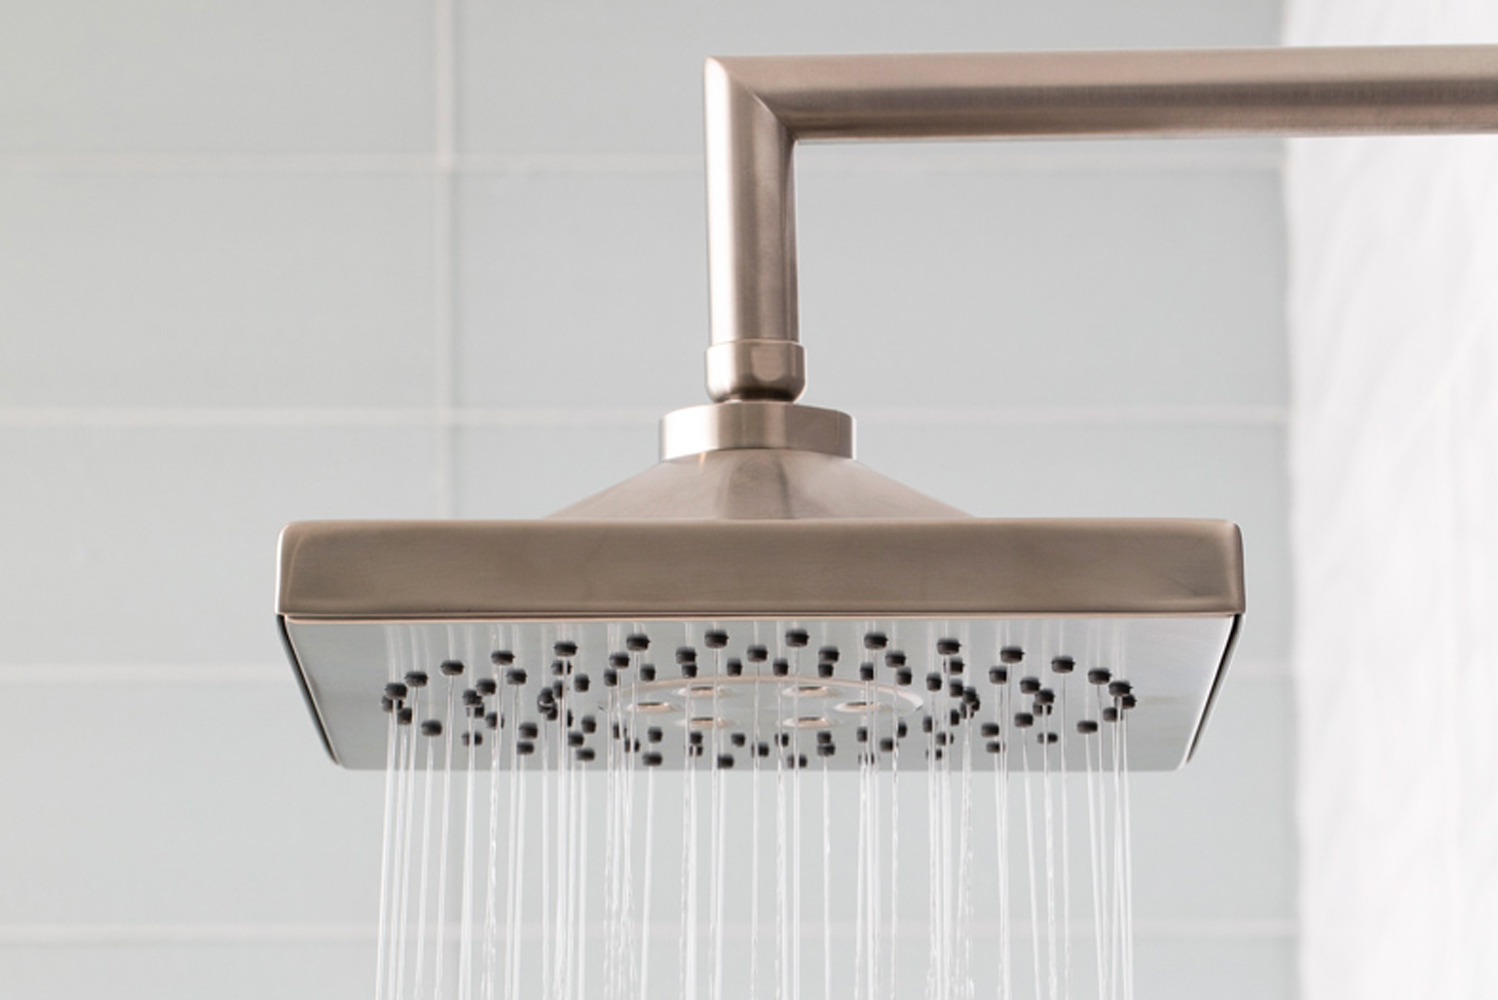 Newport Brass launched a new luxury showerhead to add to its collection of premium faucets and accessories.